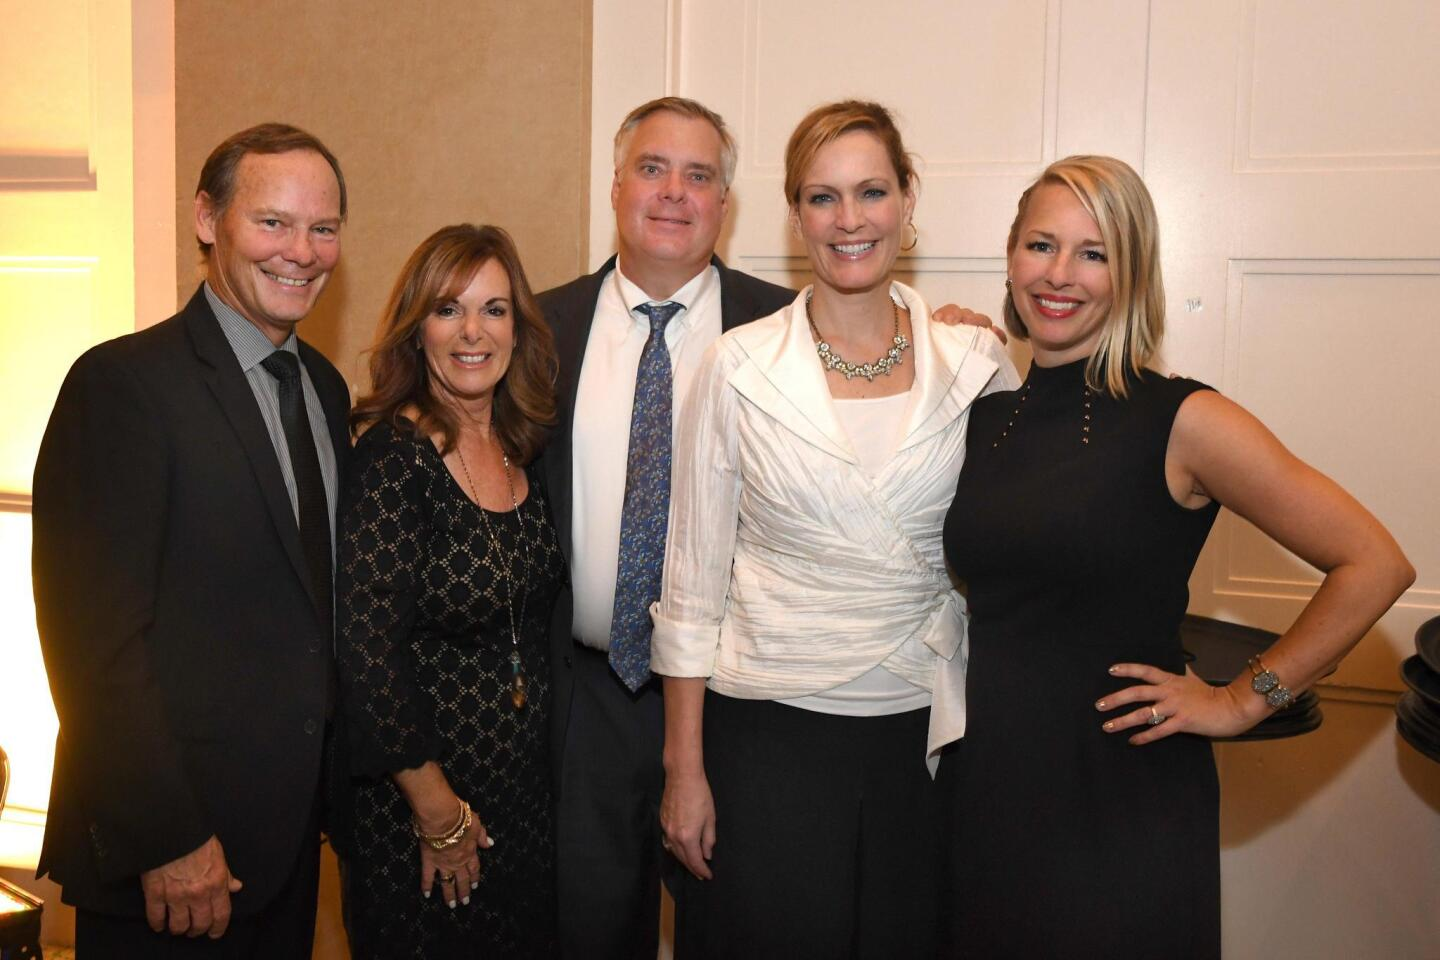 Dinner raises $883,000 for Big Brothers and Sisters